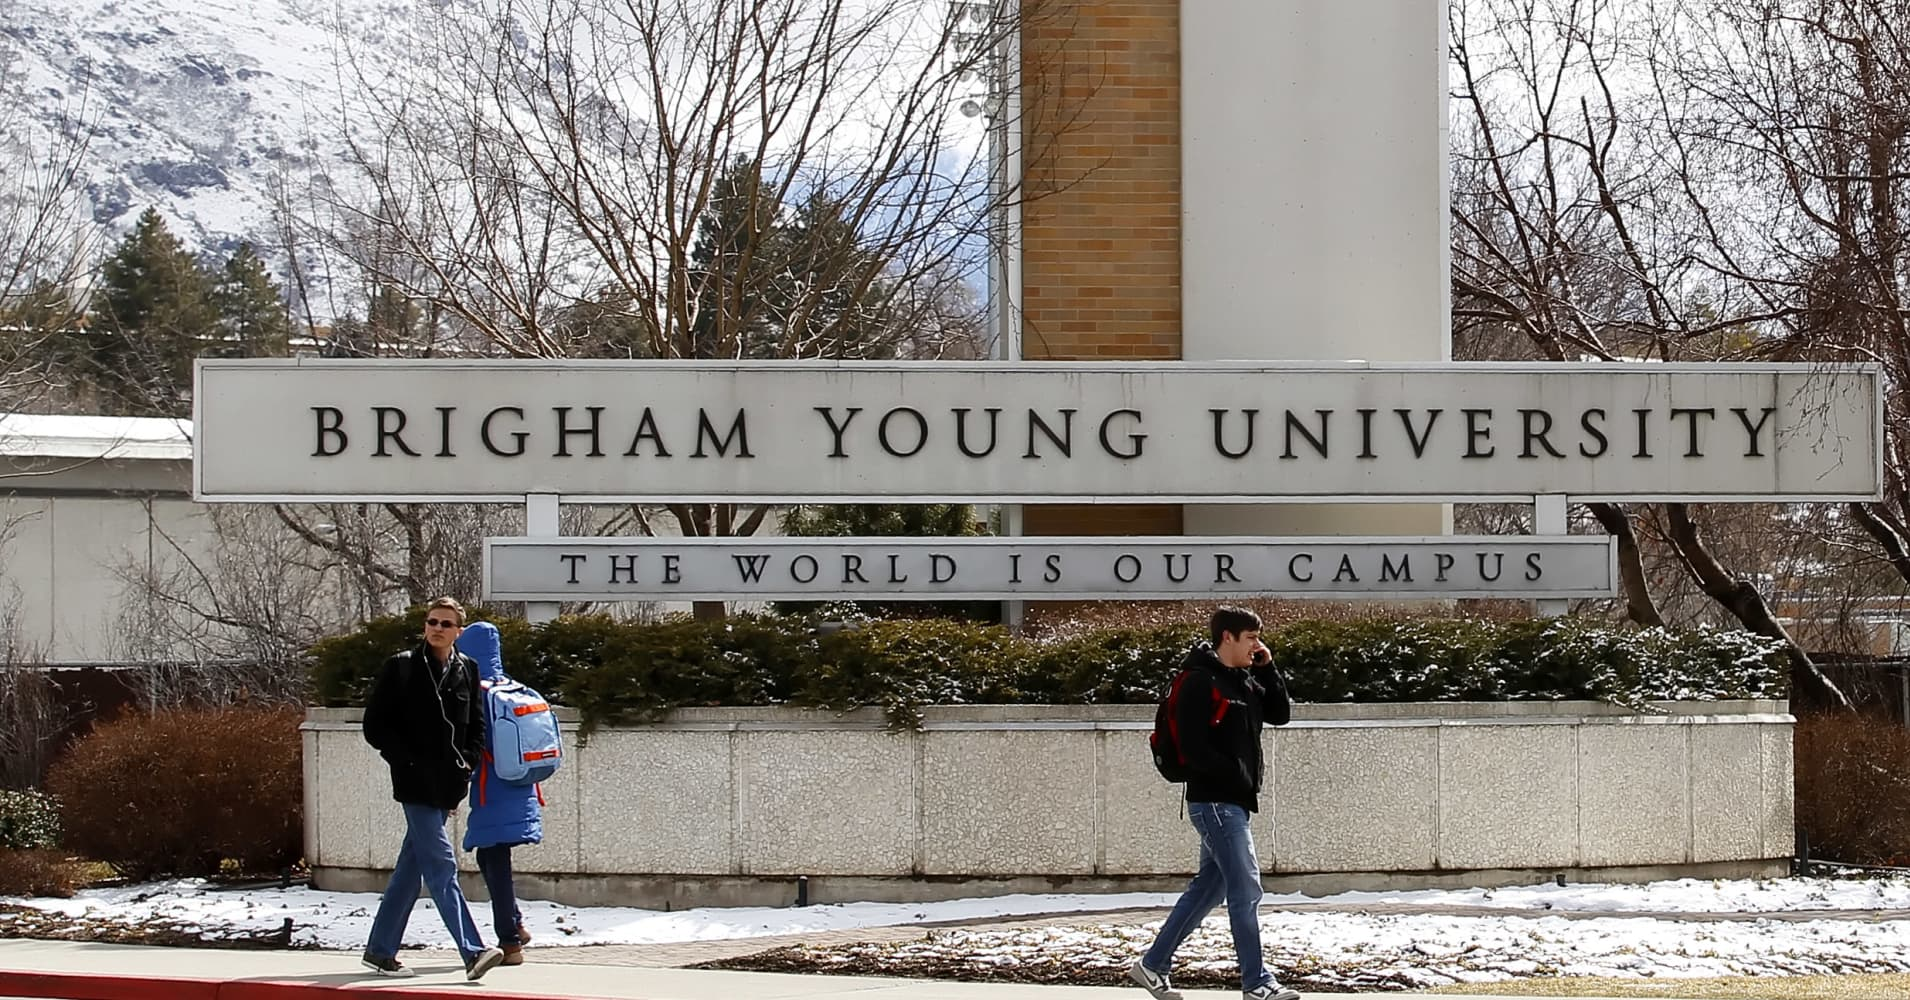 Students walks past the entrance of Brigham Young University in Provo, Utah.